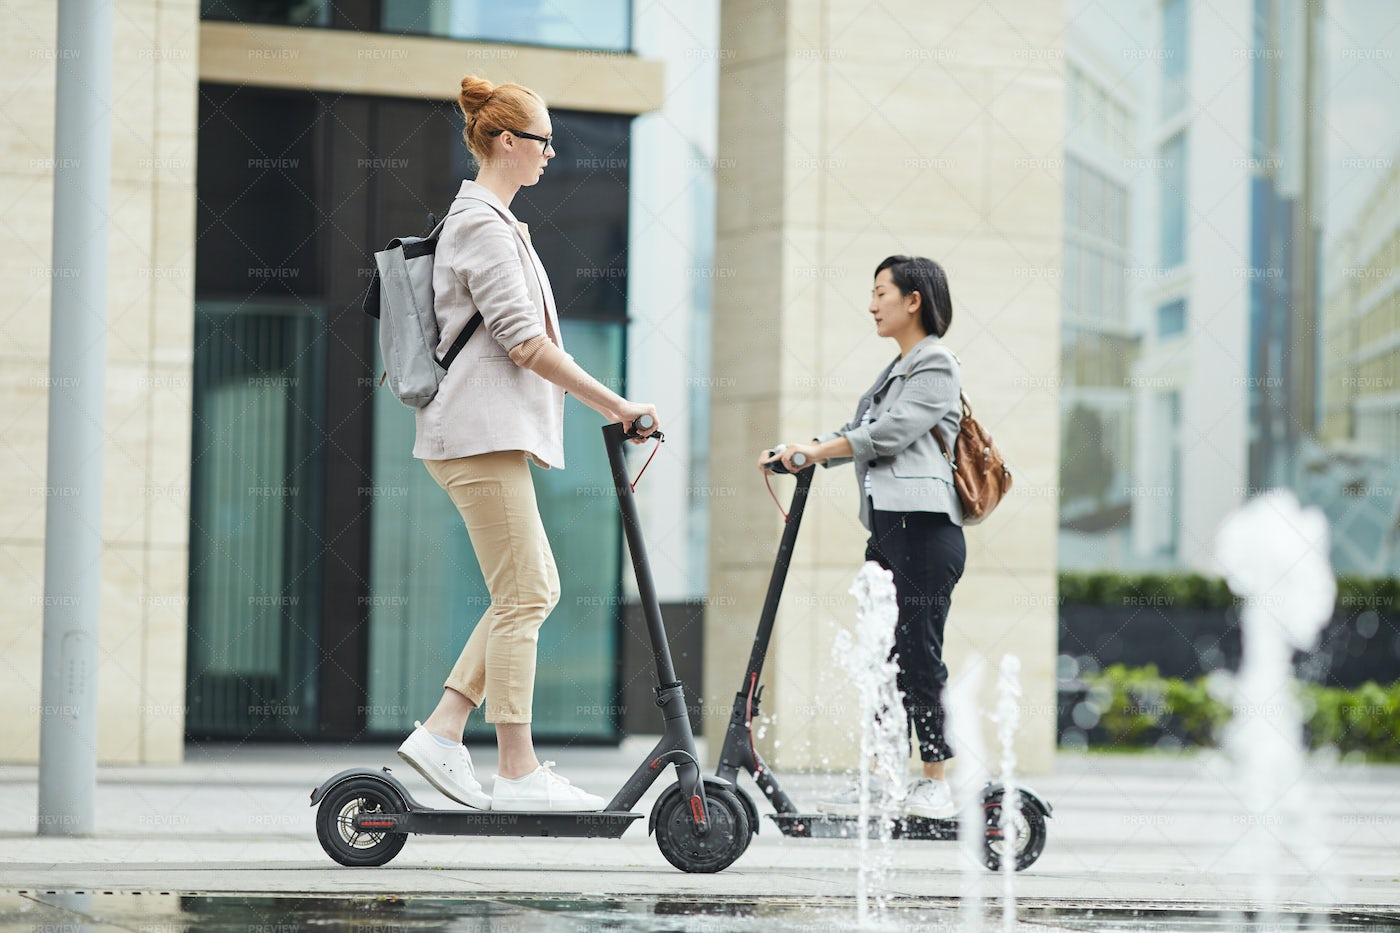 People Riding Electric Scooters In...: Stock Photos